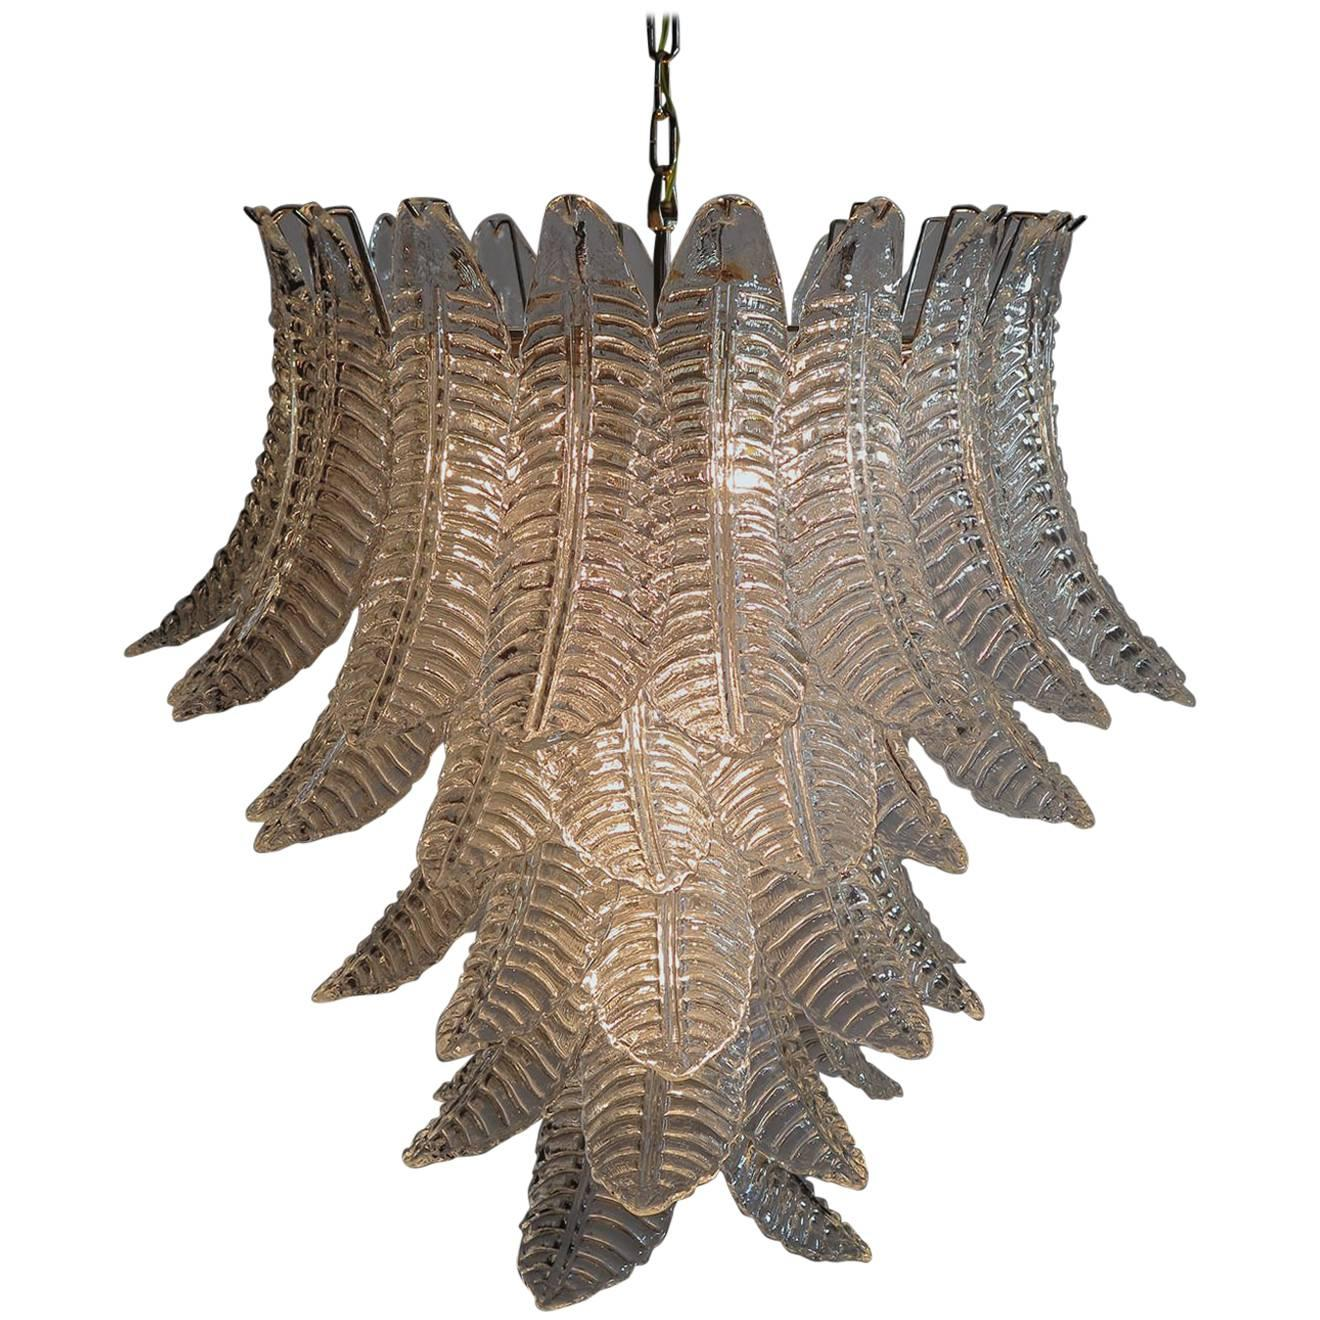 Italian Leaves Chandelier, Barovier & Toso Style, Murano